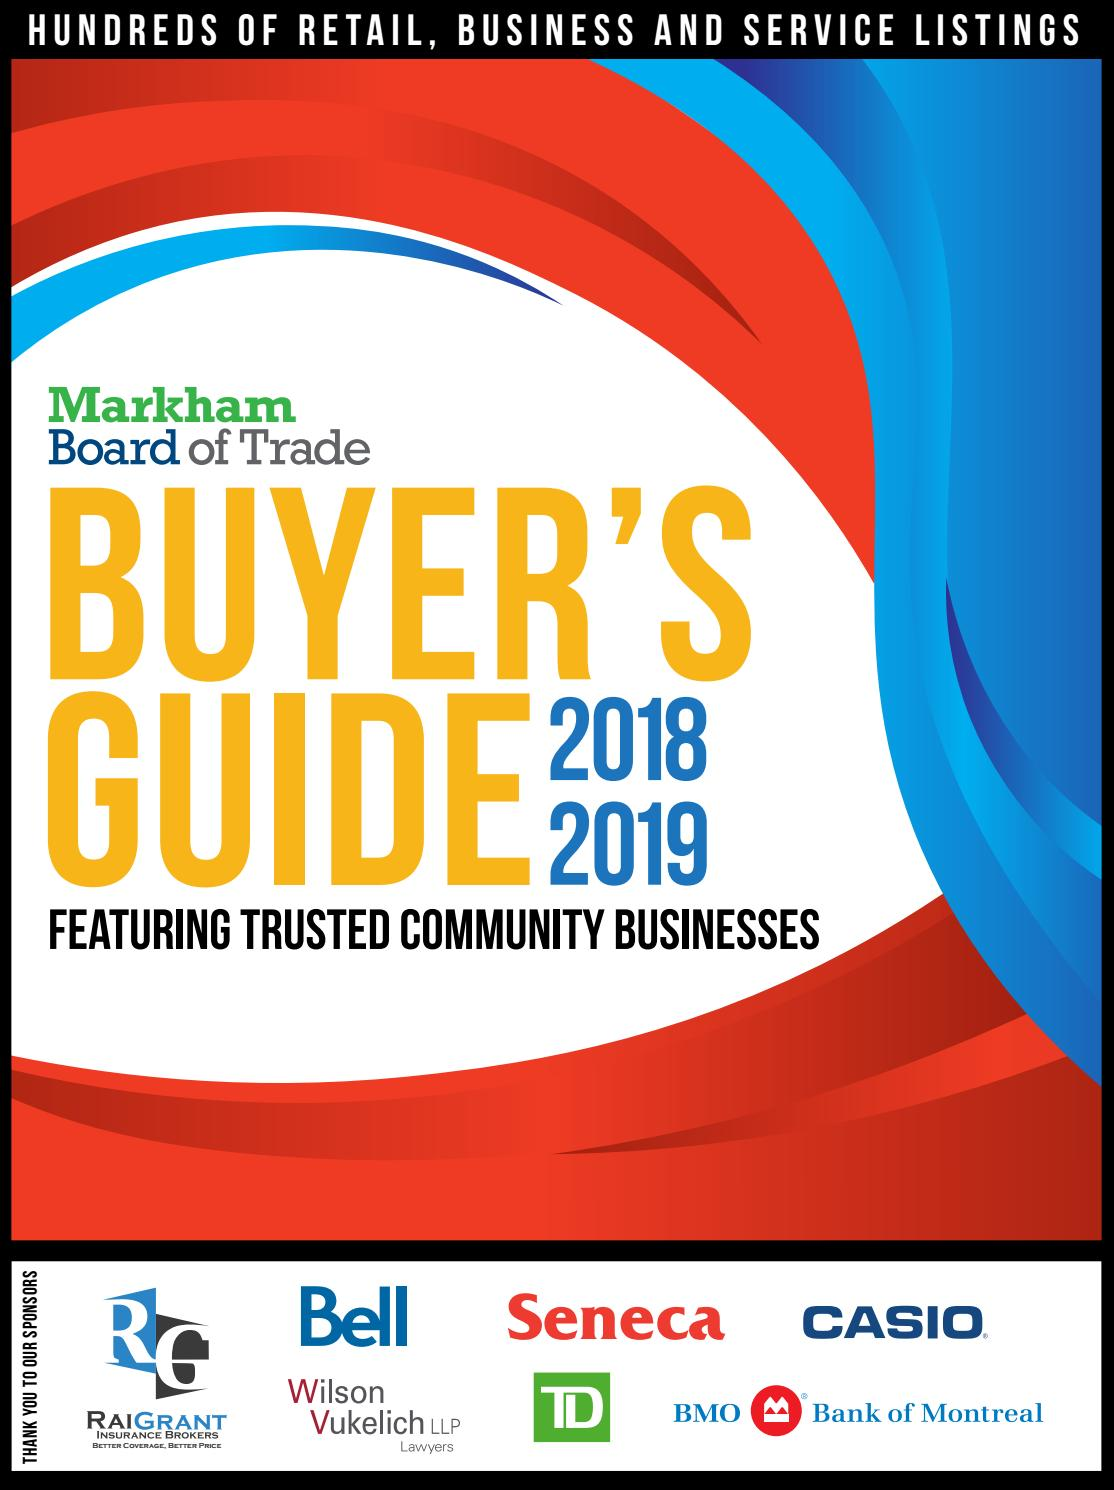 Markham Board Of Trade 2018 Buyers Guide By Markhamboard Issuu Panels Circuits Junction Box Industrial Supply Centre Karachi